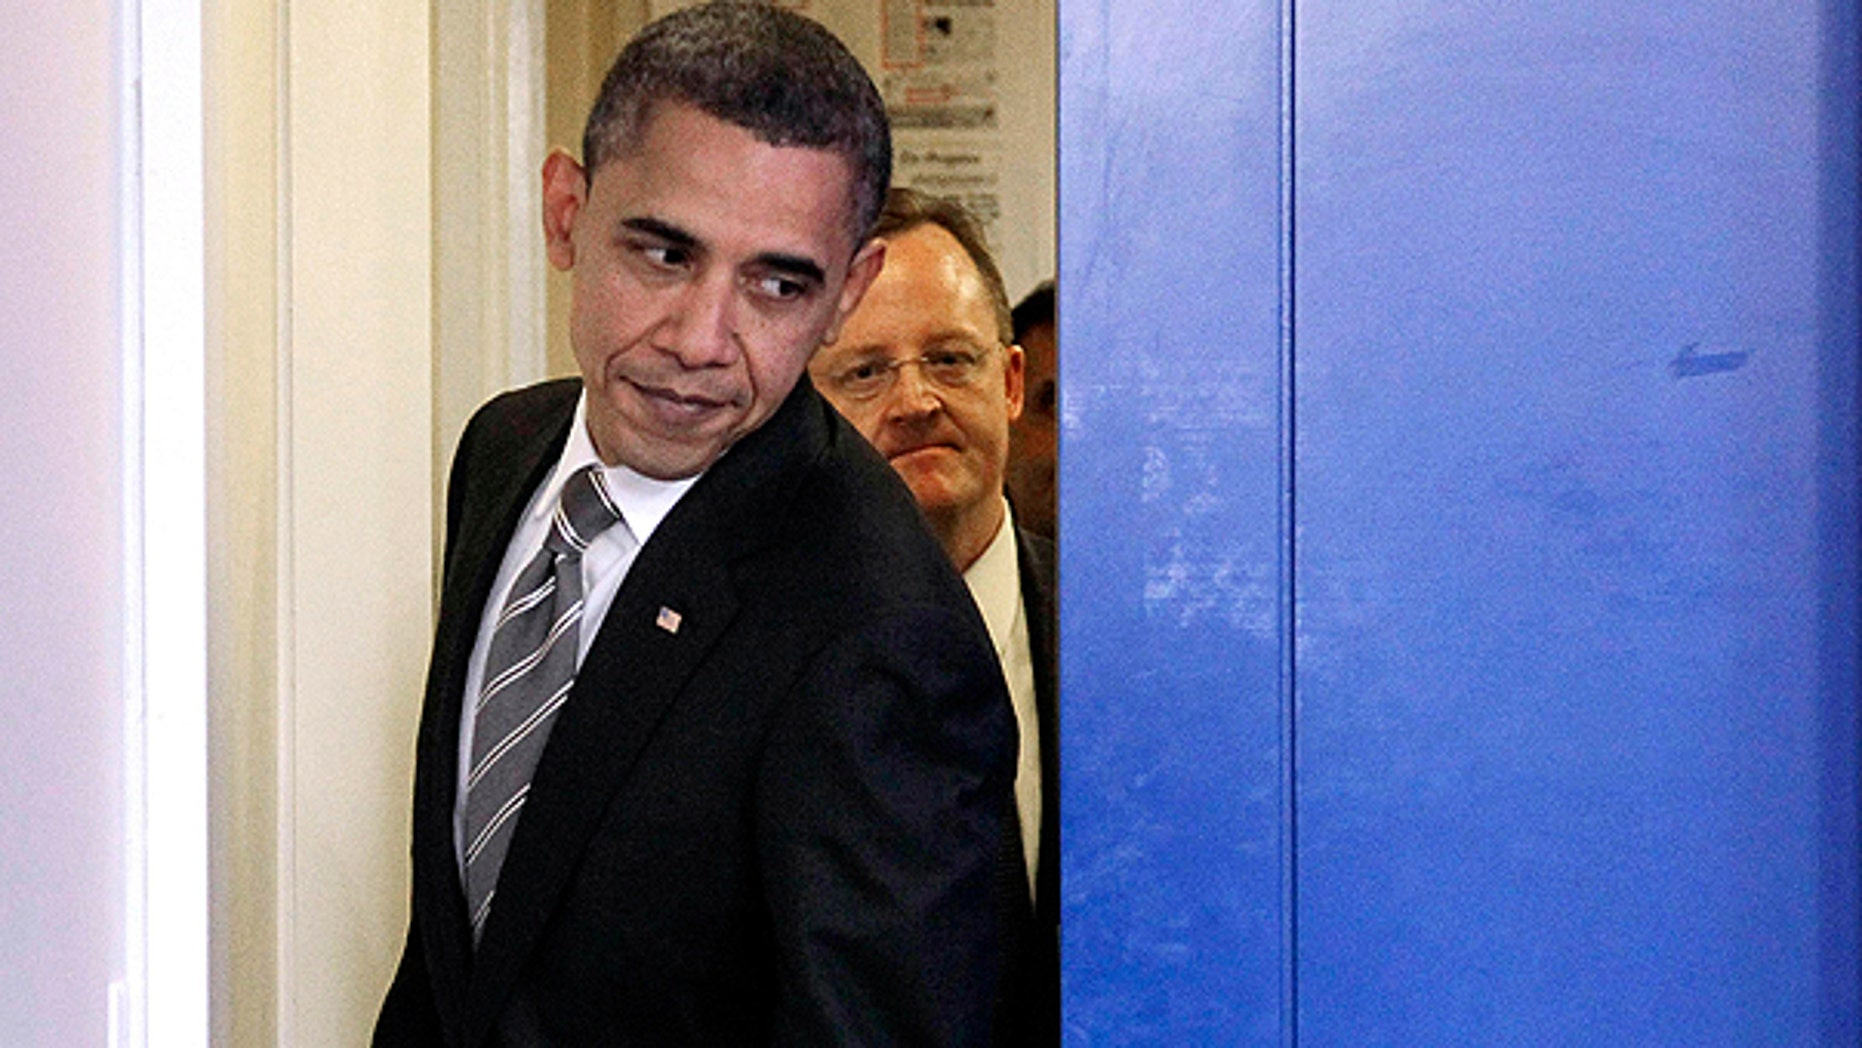 Dec. 7: President Obama, followed by White House Press Secretary Robert Gibbs, slides past the pocket door to the briefing room as he walks out to begin his news conference at the White House in Washington.